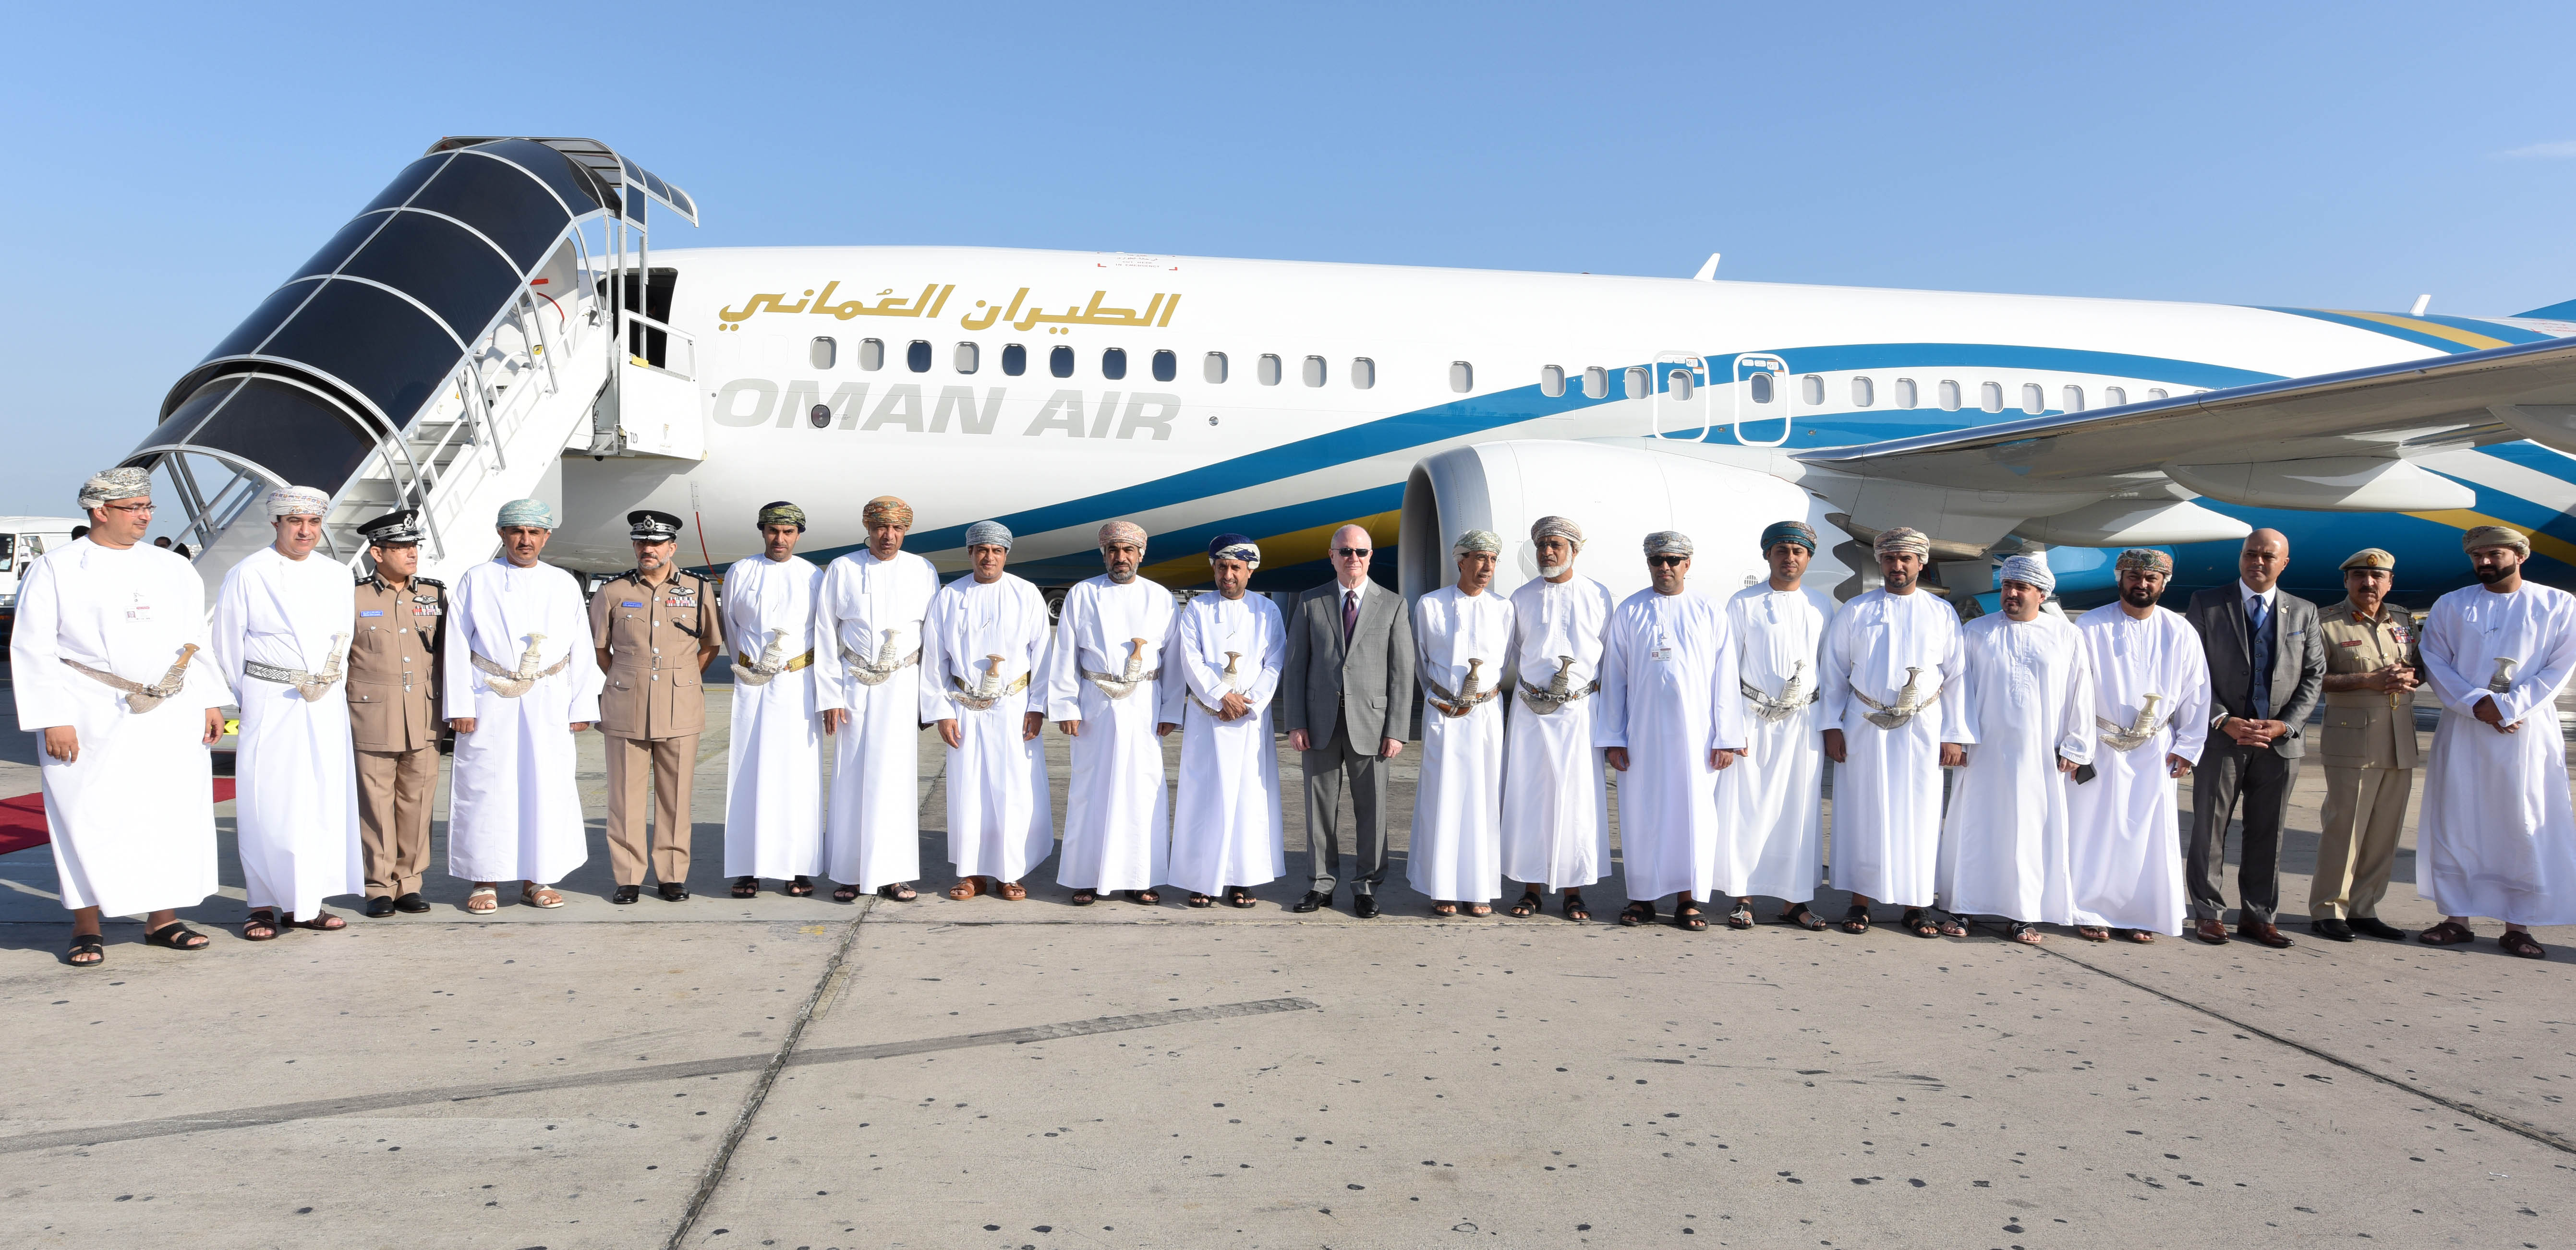 Breaking Travel News investigates: A new era for Oman Air